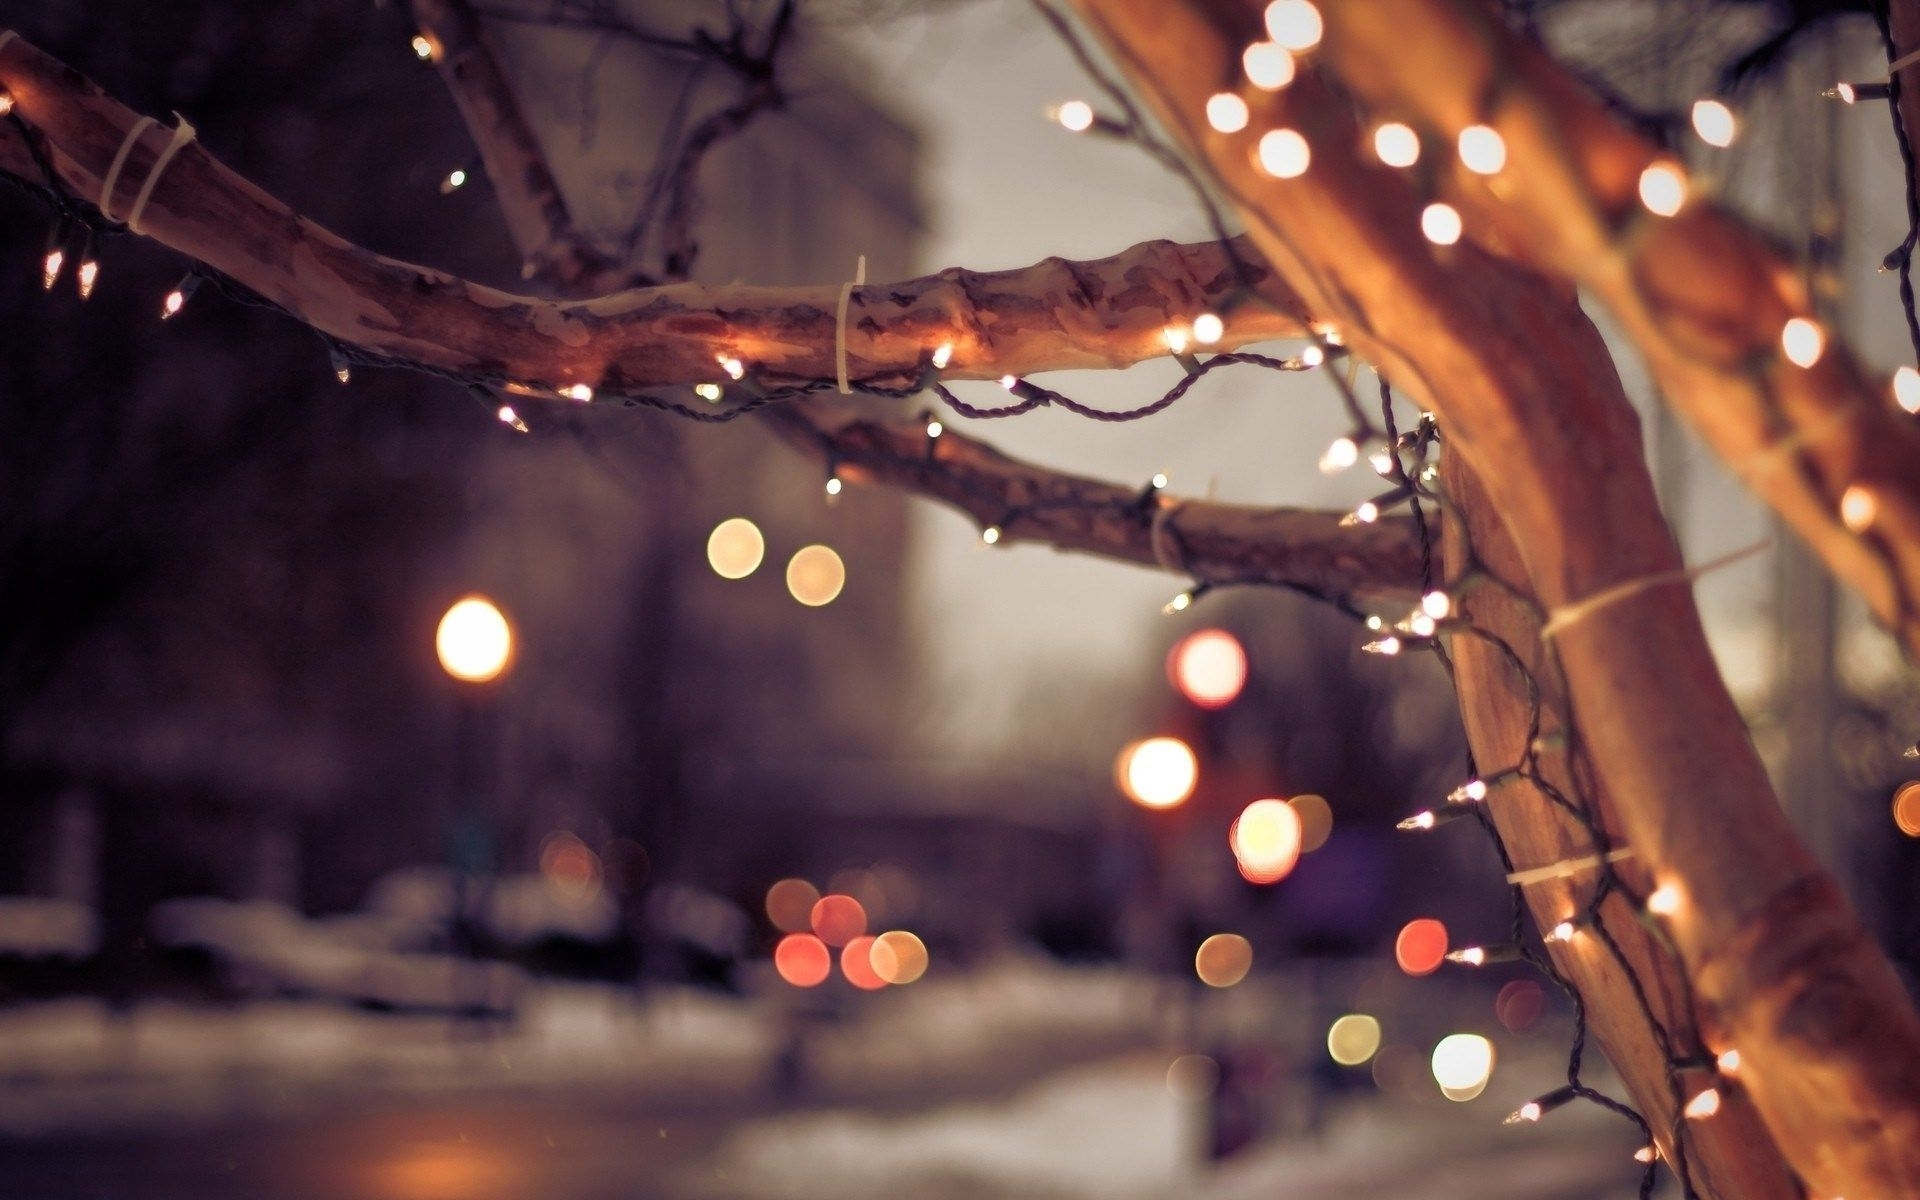 10 Top Christmas Lights Computer Wallpaper FULL HD 1920×1080 For PC Background